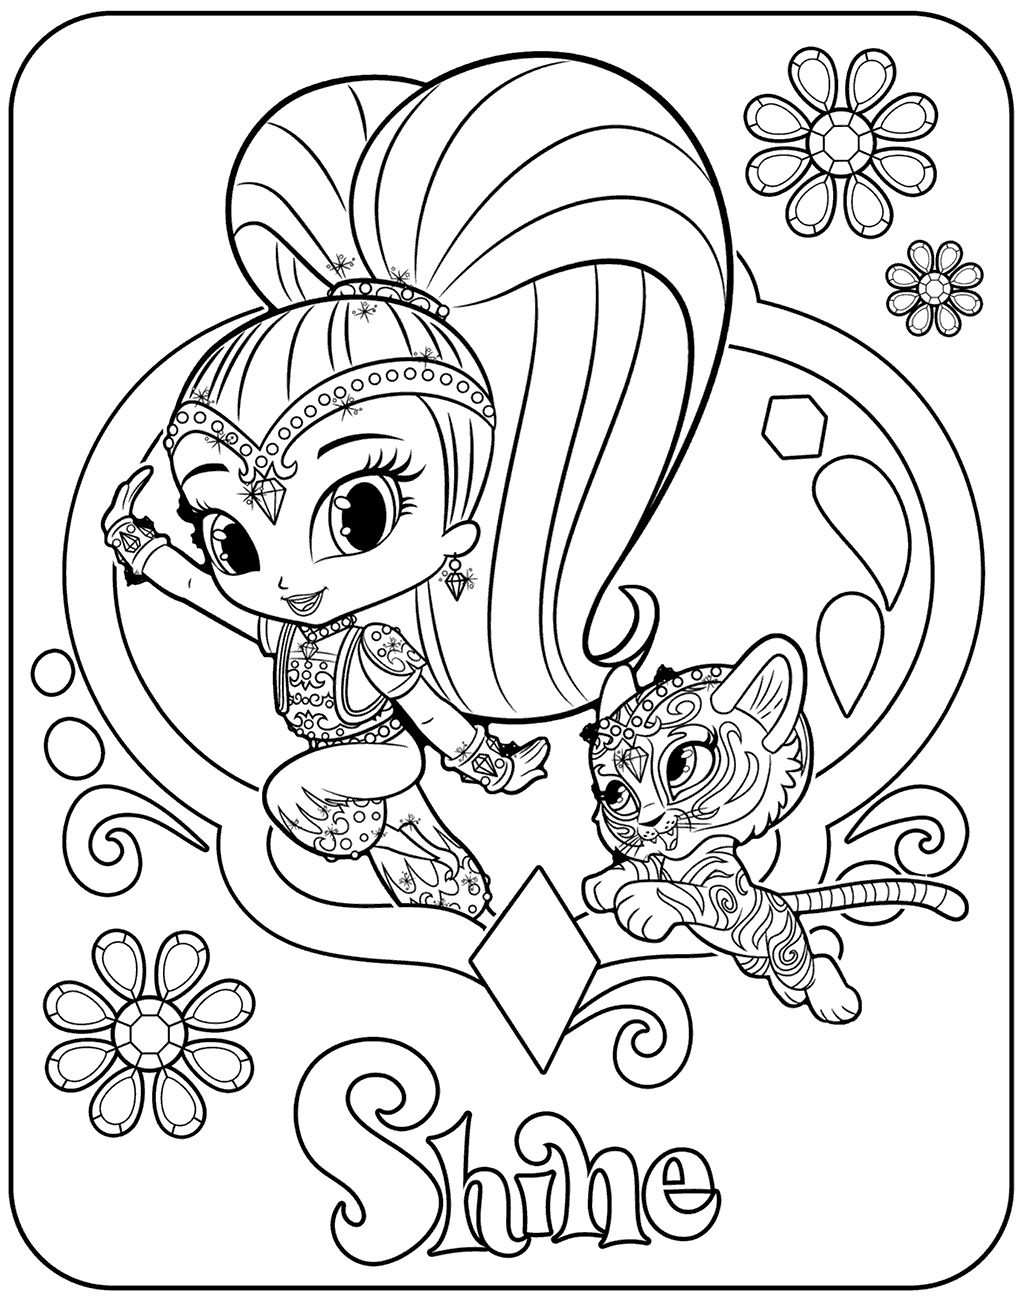 coloring shimmer and shine shimmer and shine coloring pages getcoloringpagescom and shimmer shine coloring